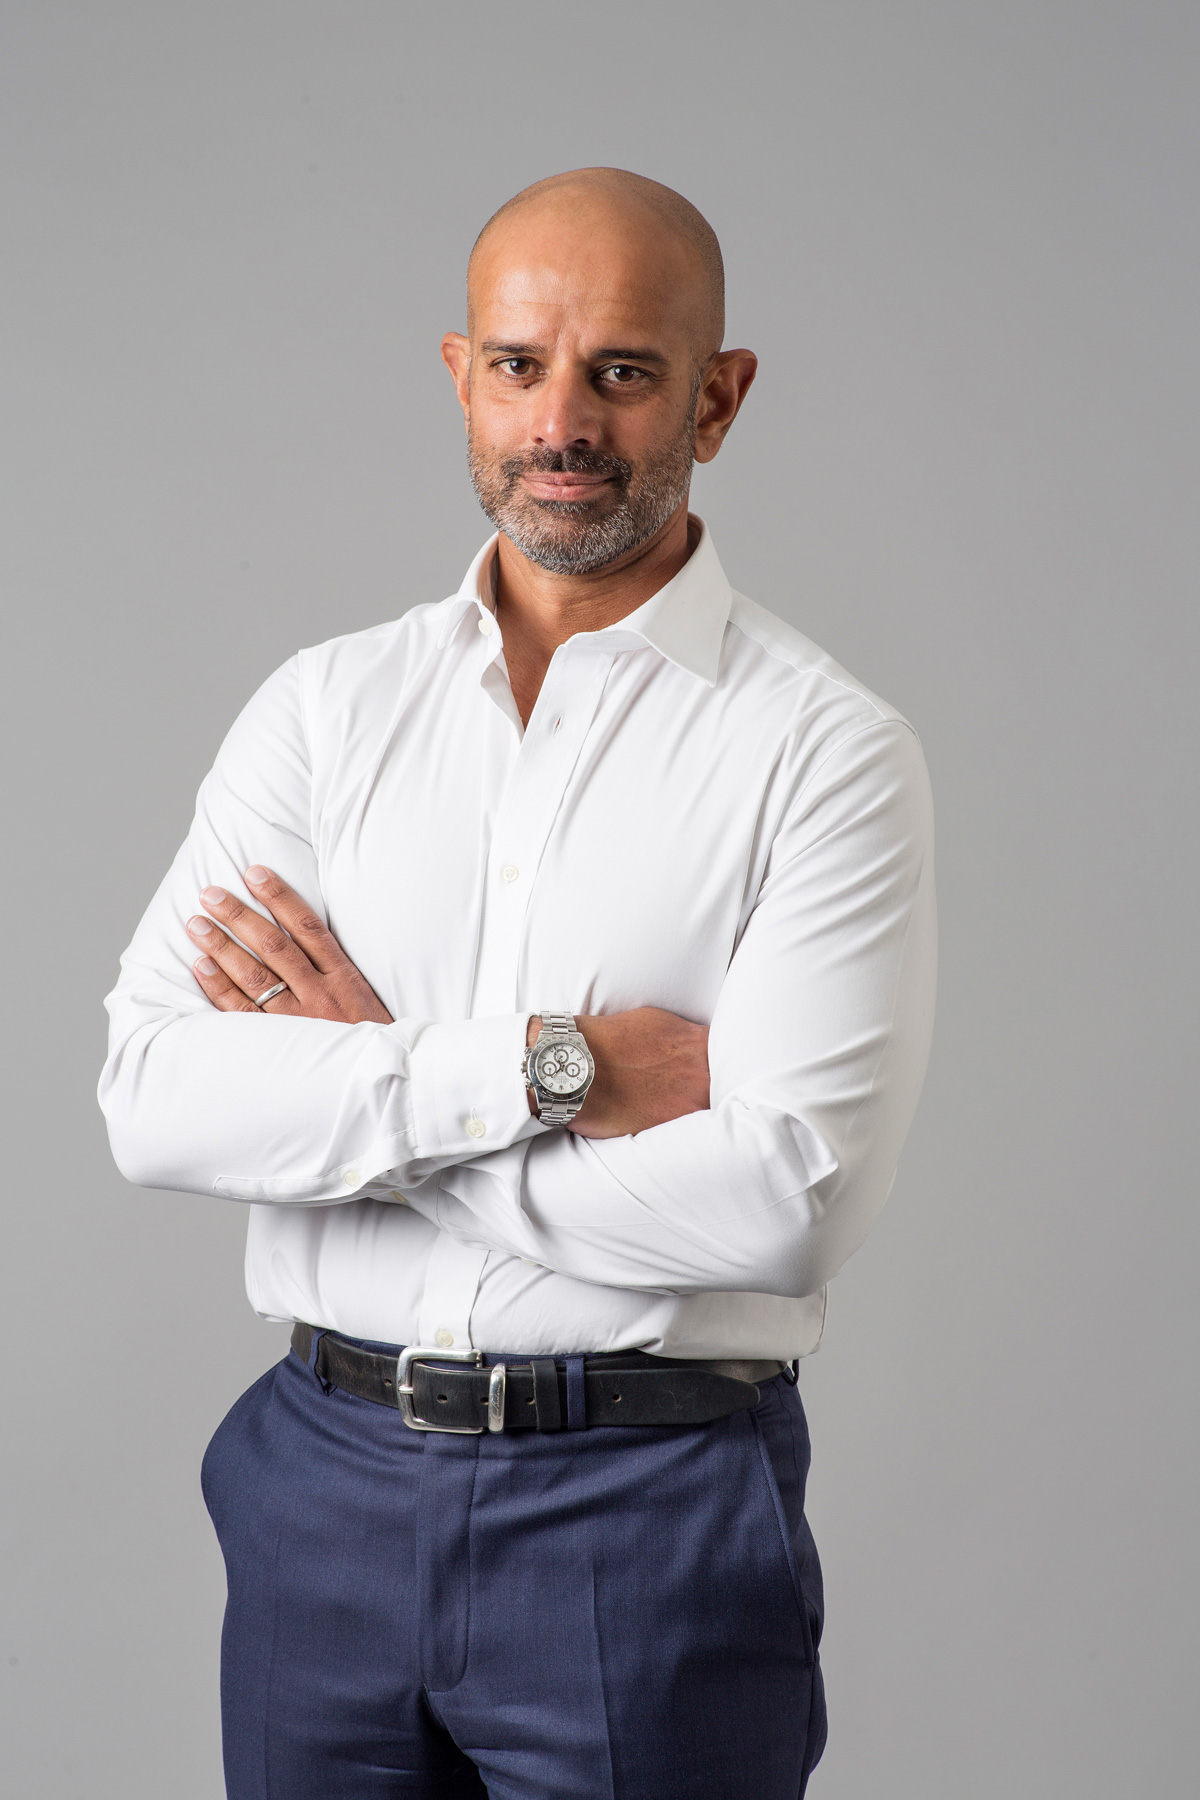 Paul Thandi, CEO of The NEC Group